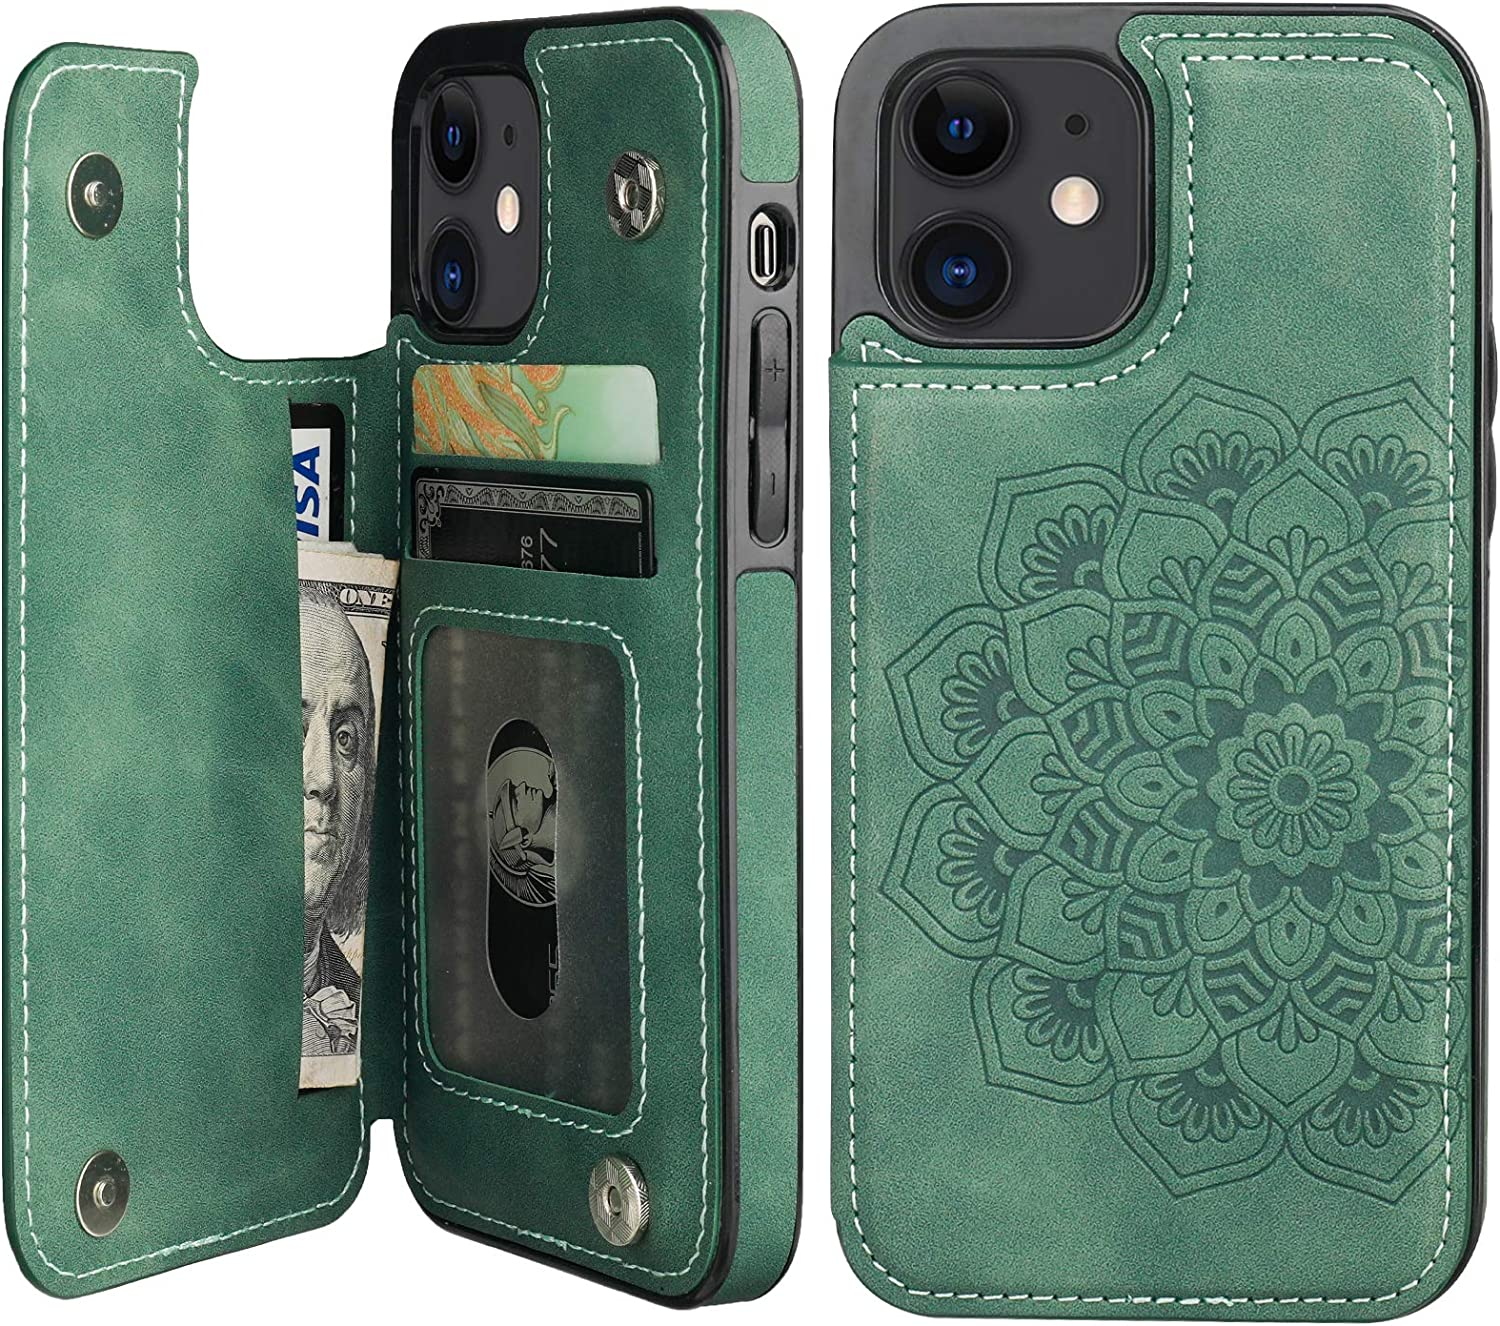 Vaburs Compatible with iPhone 12 and iPhone 12 Pro Case Wallet with Card Holder,Embossed Mandala Pattern Flower PU Leather Double Magnetic Buttons Flip Shockproof Protective Cover 6.1 Inch(Green)